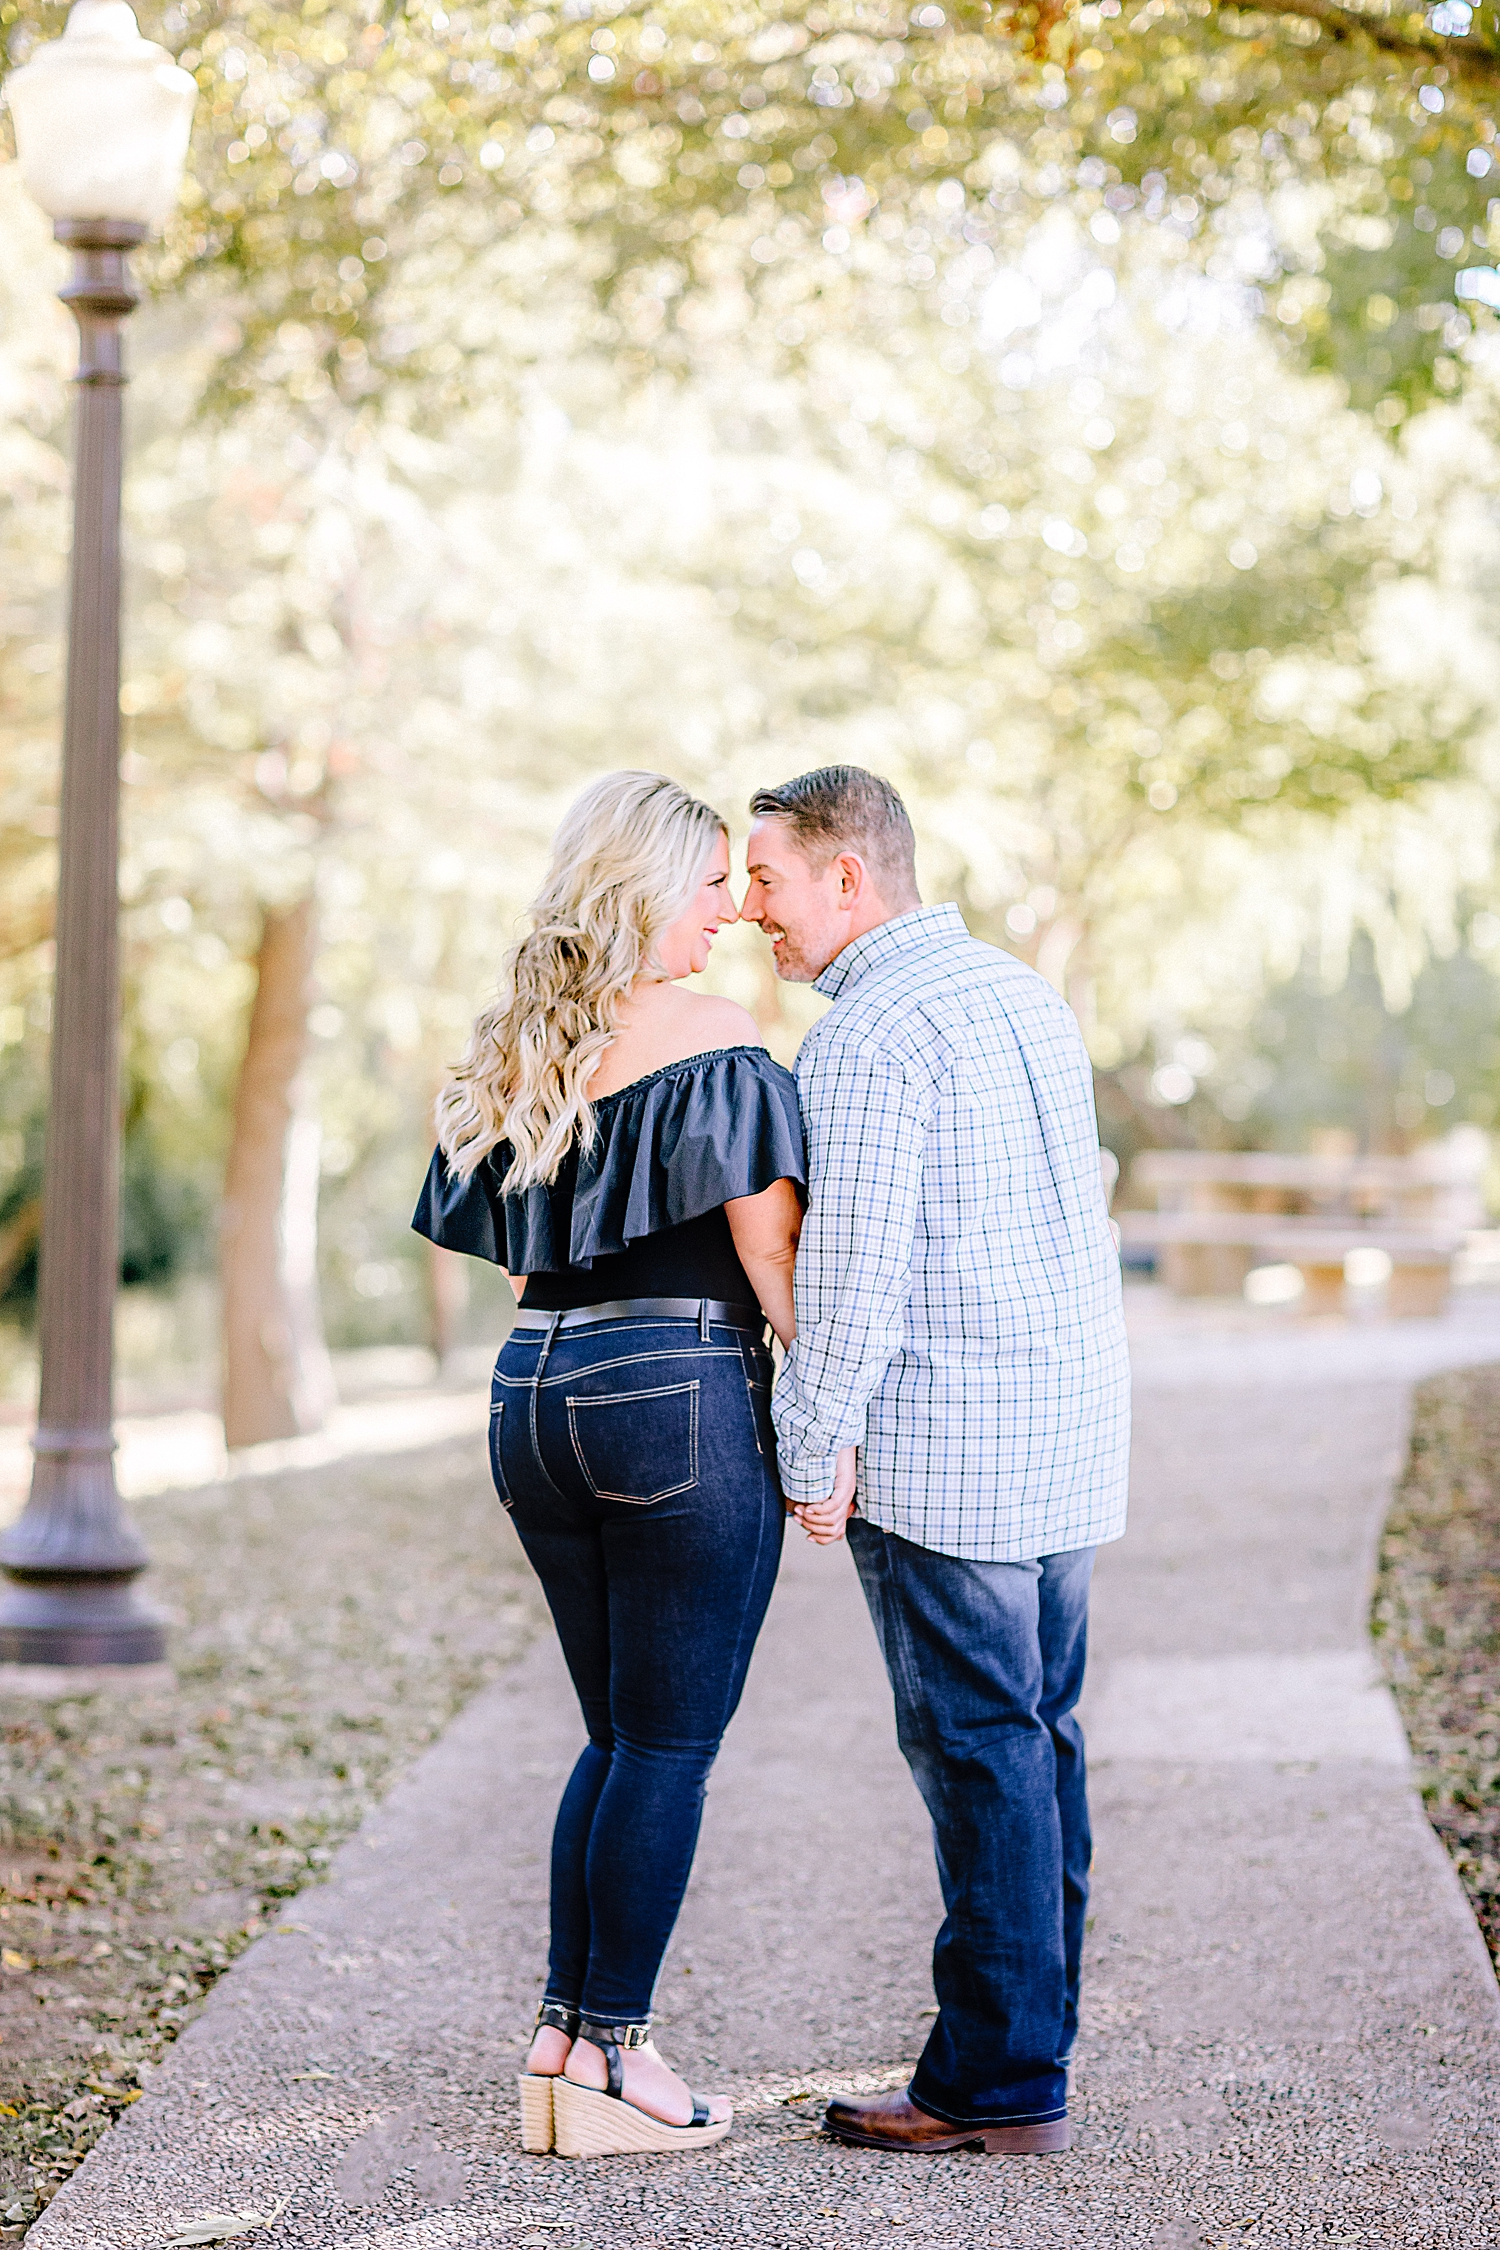 Engagement-Photo-Session-University-of-Incarnate-Word-UIW-San-Antonio-Texas-Carly-Barton-Photography_0039.jpg